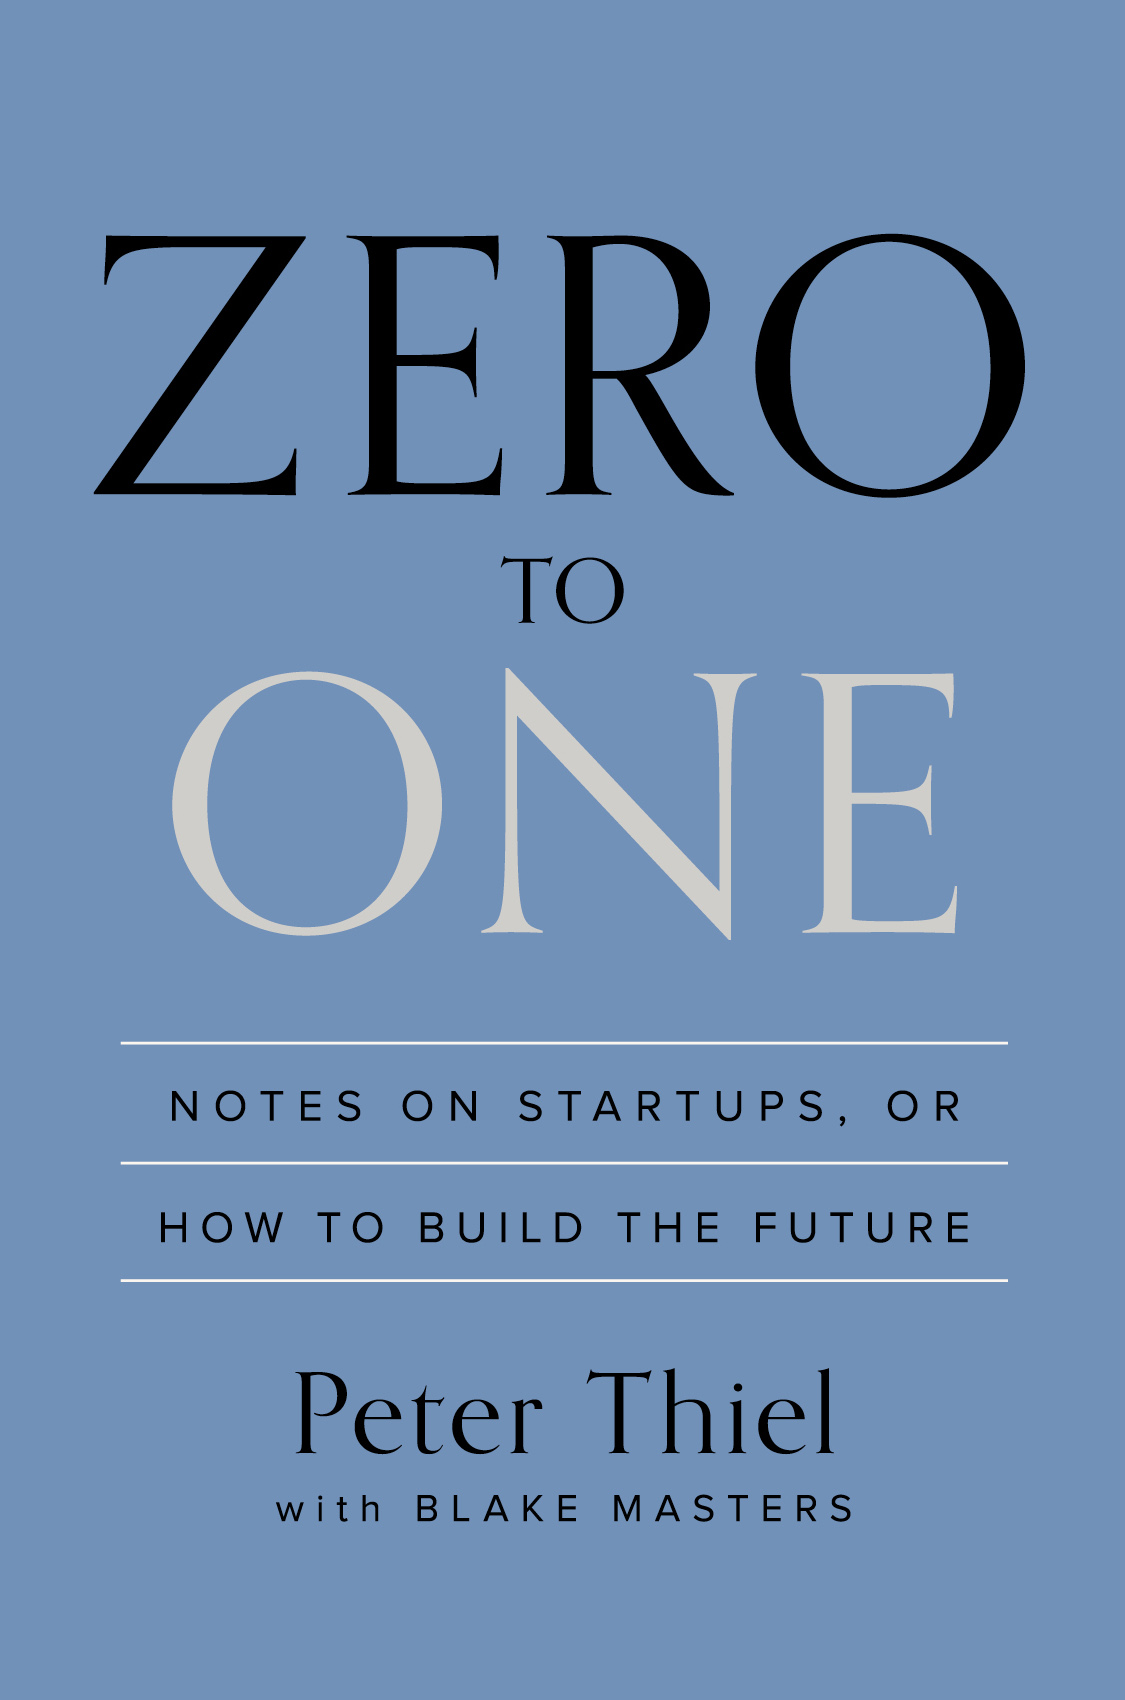 zero to one by peter thiel book summary